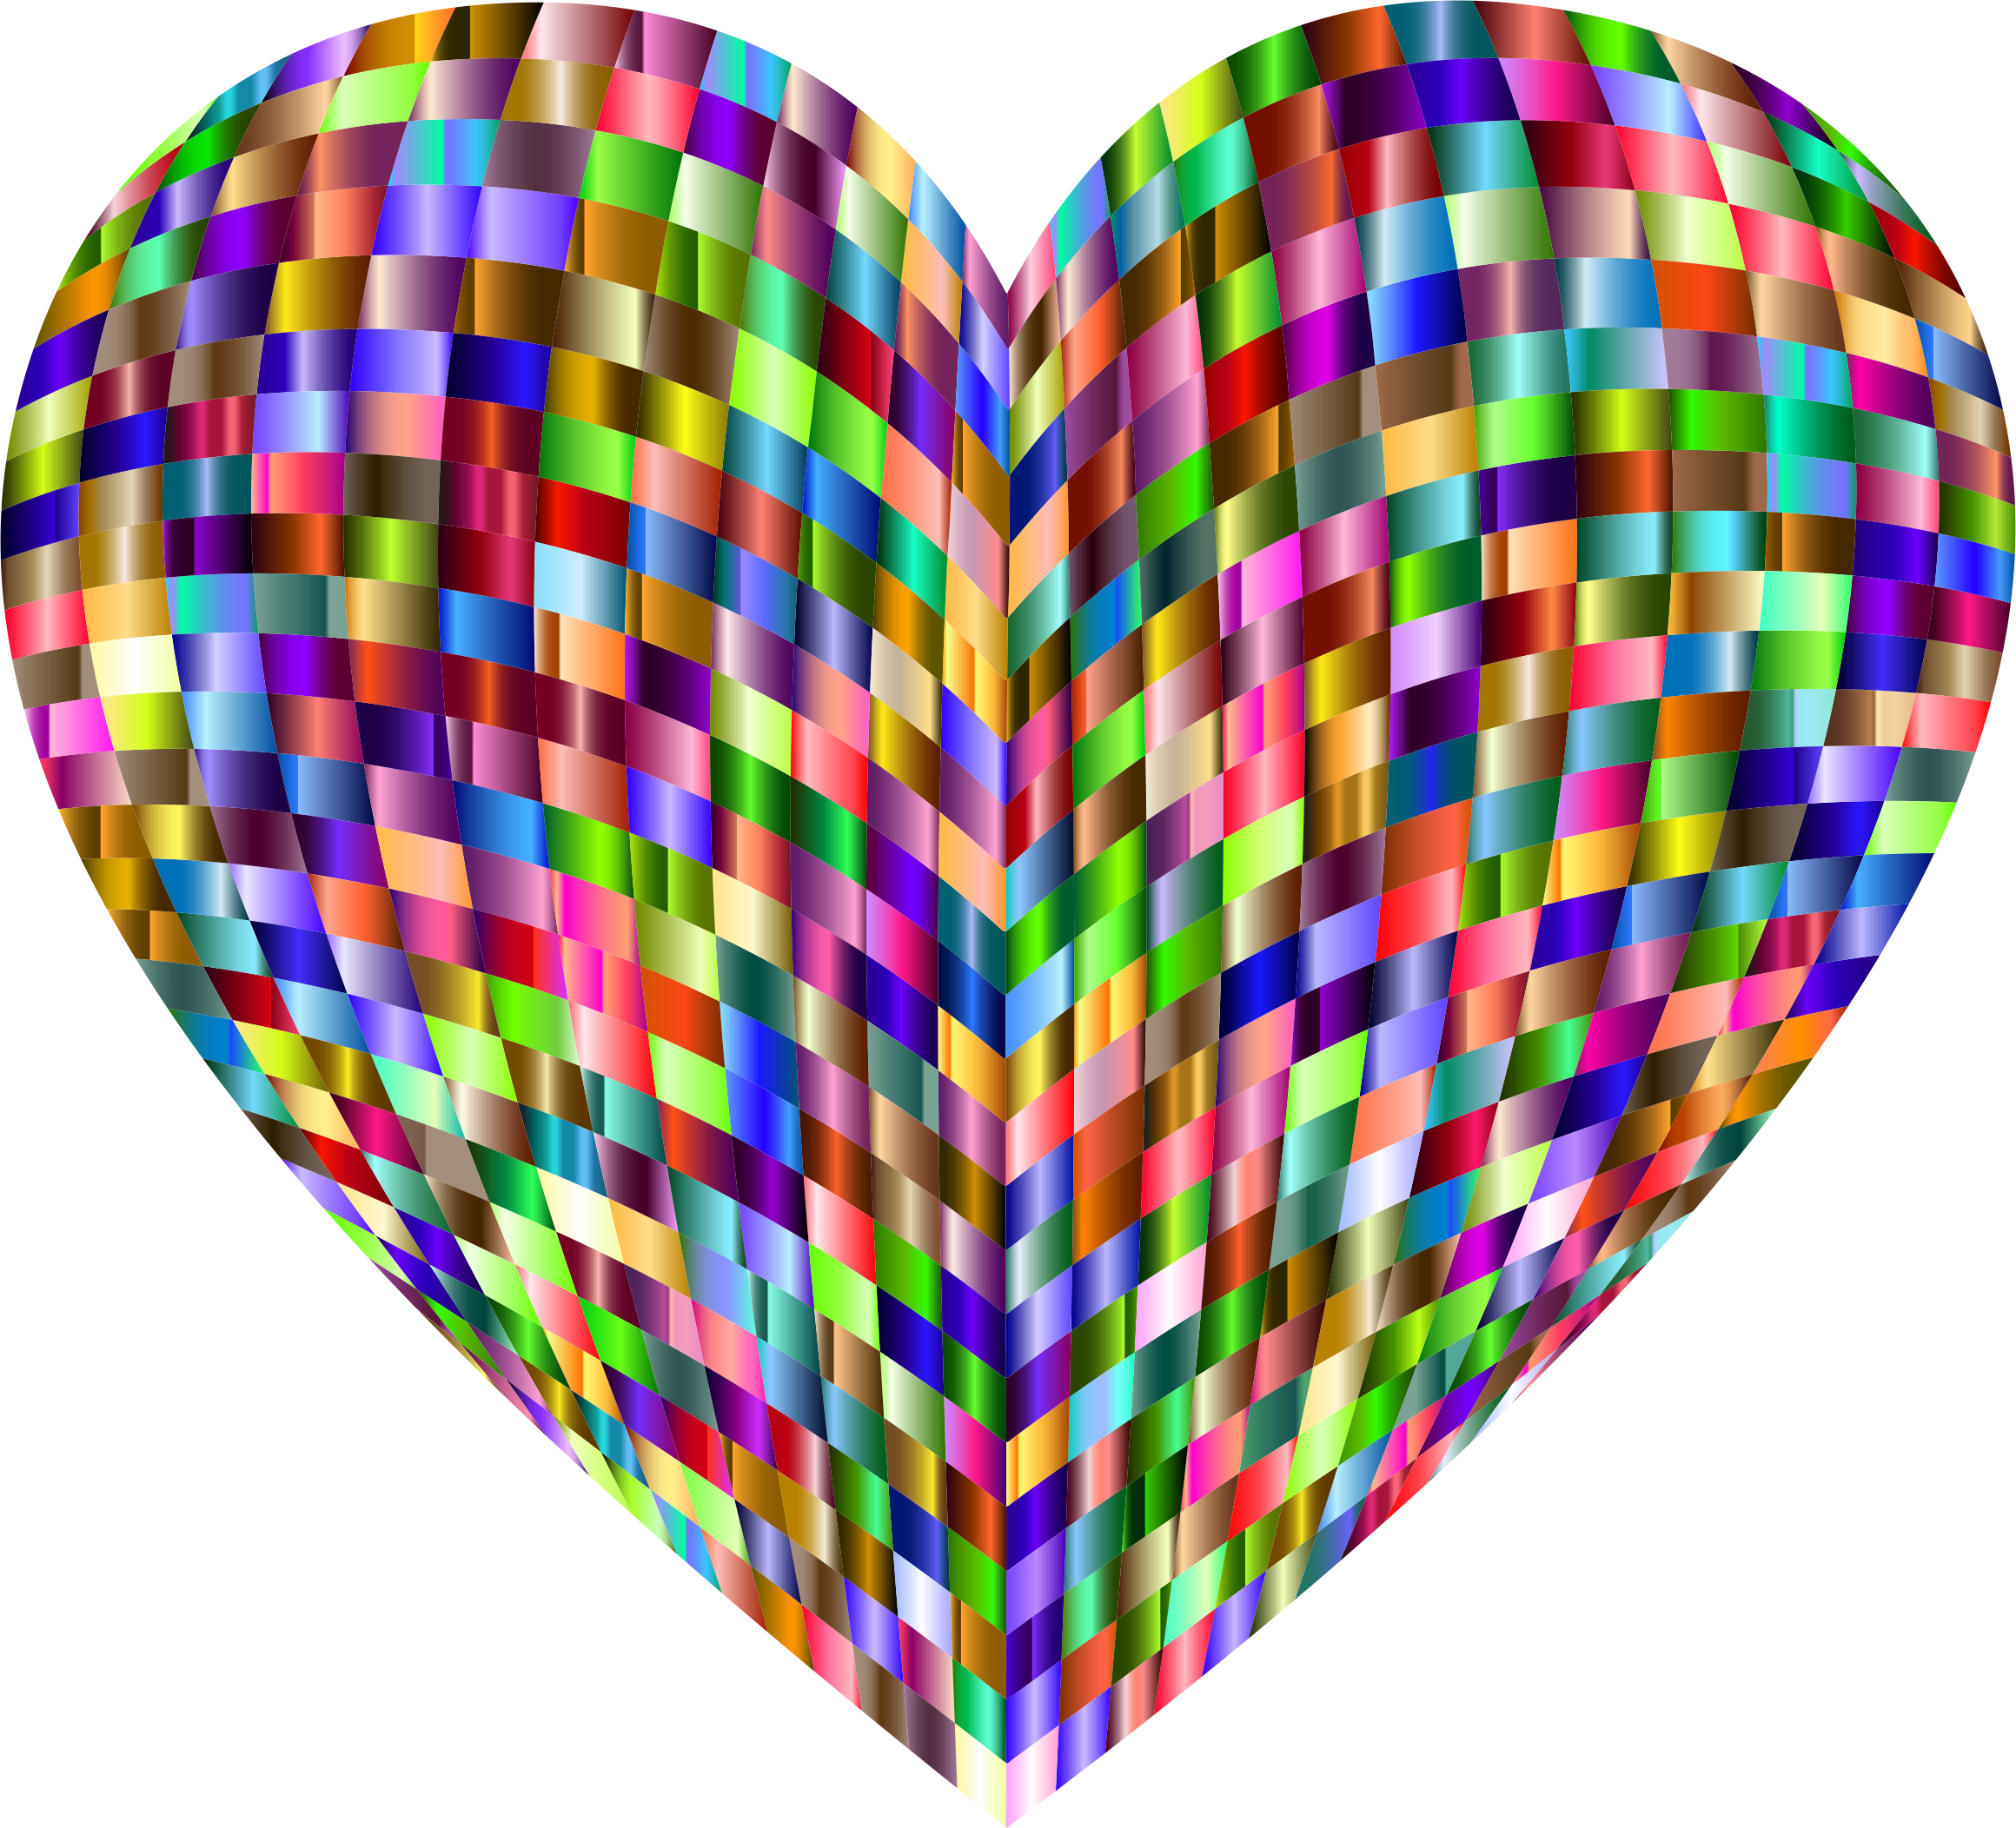 3D Prismatic Grid Heart 6 by GDJ